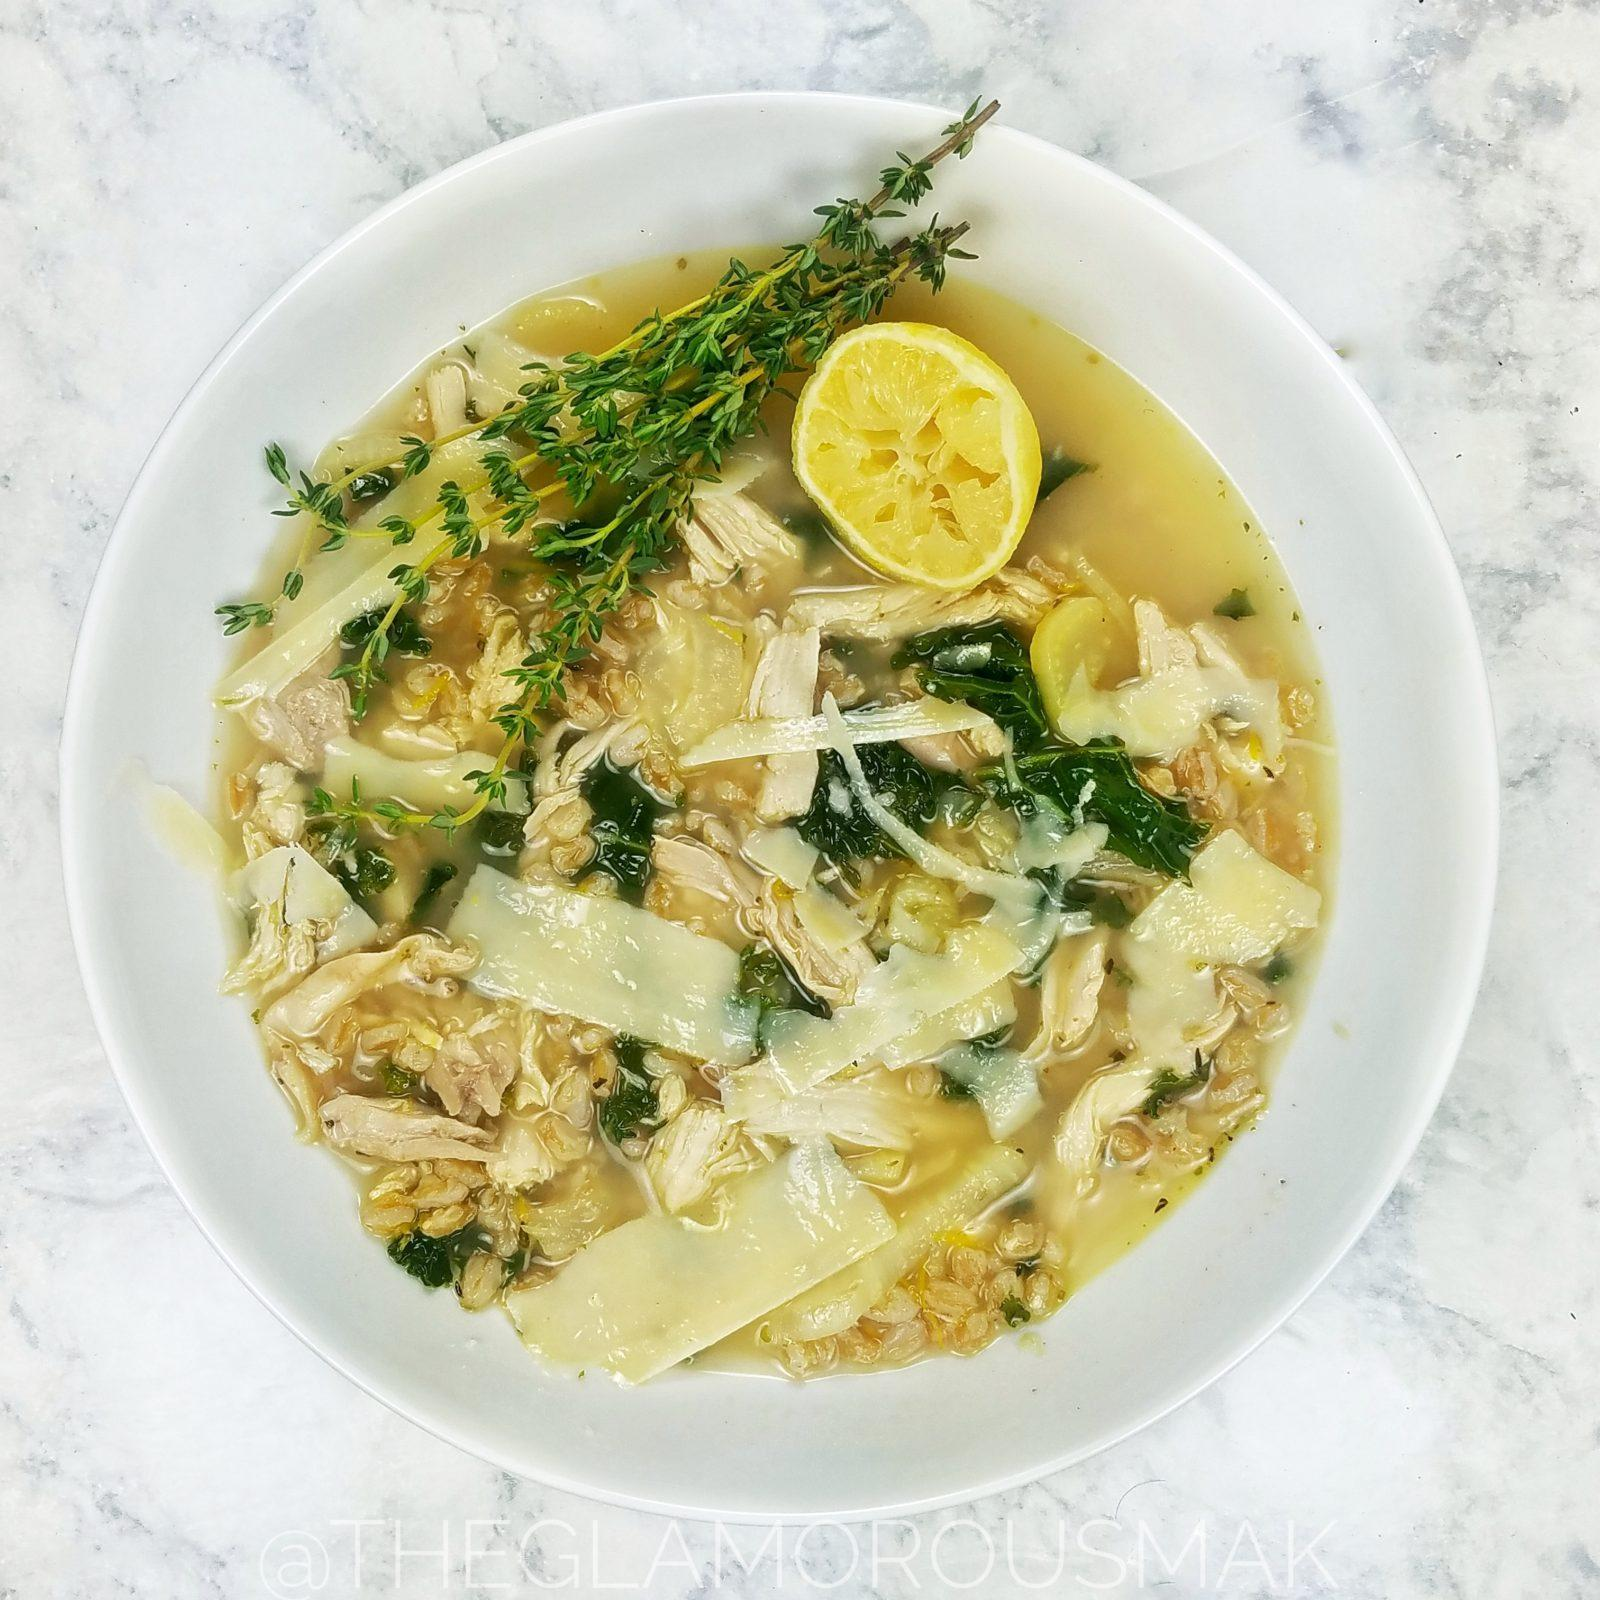 This is the best chicken soup recipe with farro and kale is a quick and easy low carb weeknight meal made in 30 minutes or less with only 10 ingredients. This fall/winter soup is made with chicken, broth, lemon, fennel and kale that's healthy, simple and better than chicken noodle or chicken and rice. Eat as a main dish, dinner or lunch. Makes great leftovers. Perfect for weightloss and even the kids will love it!